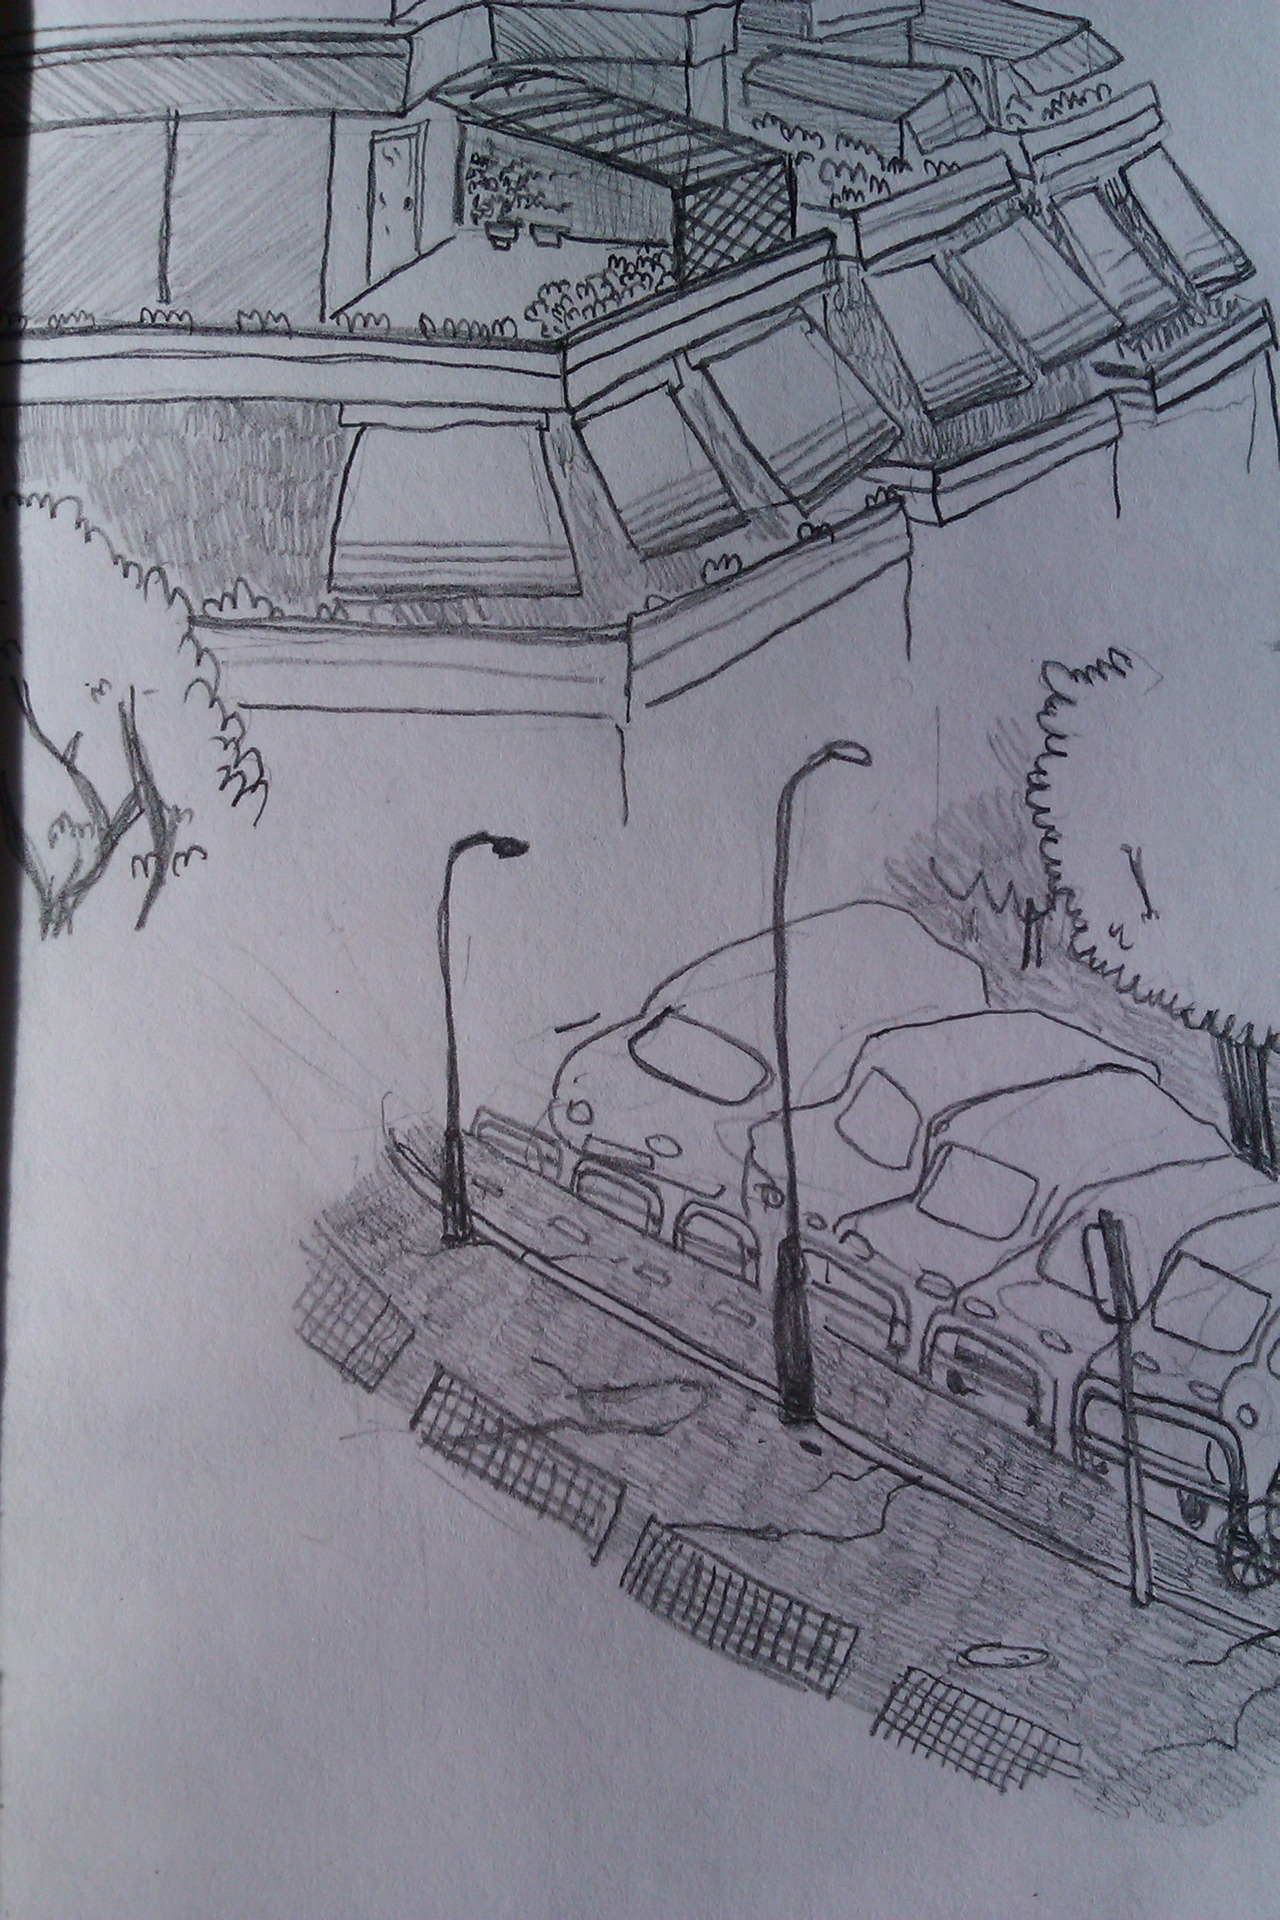 Some sketches I did of places around the apartment I stayed in on my holiday, Italy is great when you're drawing as people rush up to see what you're doing and get excited.